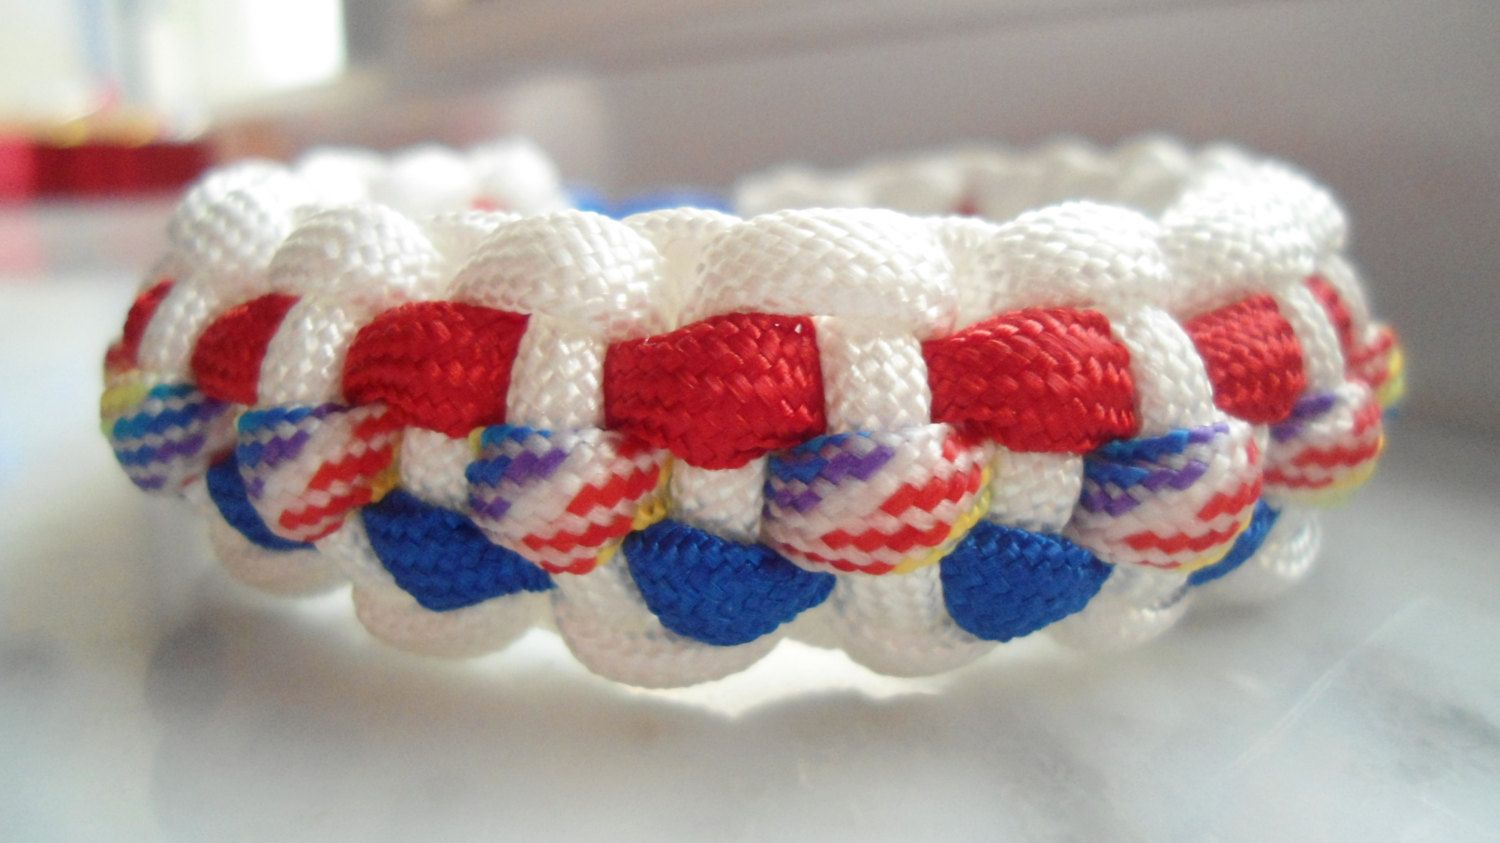 4th of July Handmade Red, White, and Blue 550 Paracord Cobra Weave Bracelet by TagpagBracelets on Etsy